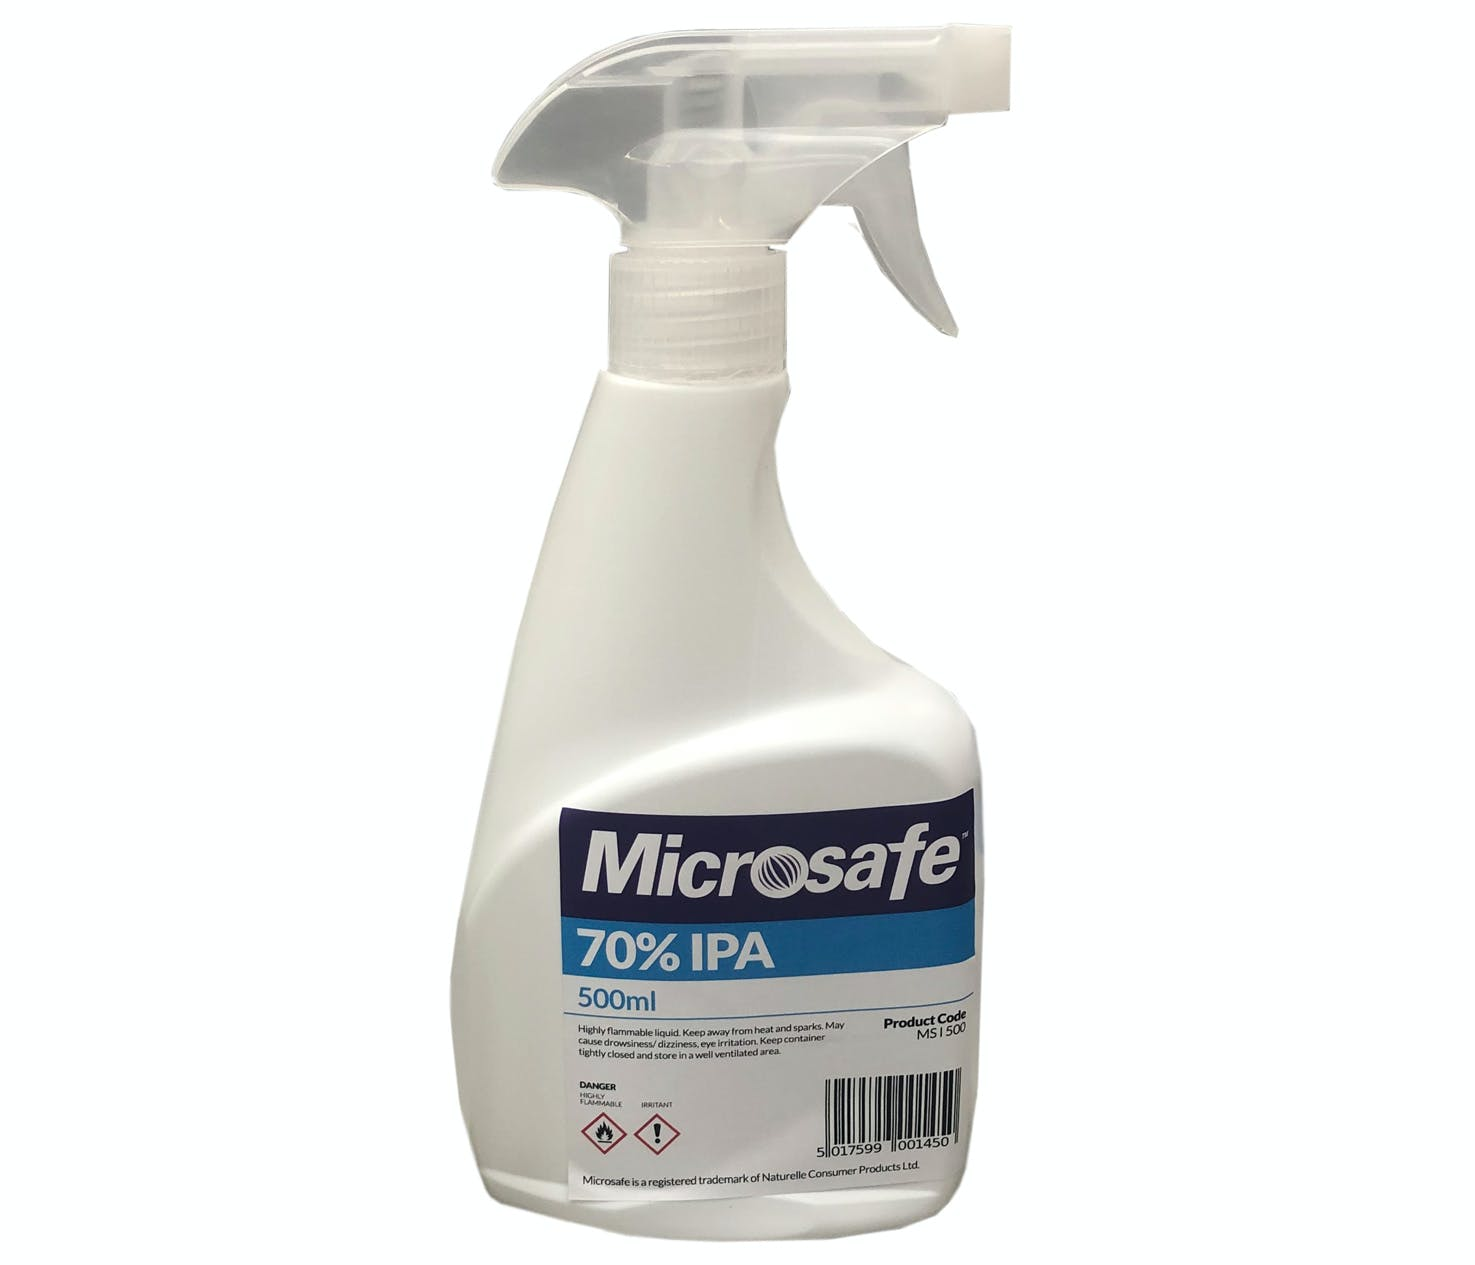 Microsafe 70% IPA 500ml Surface Spray